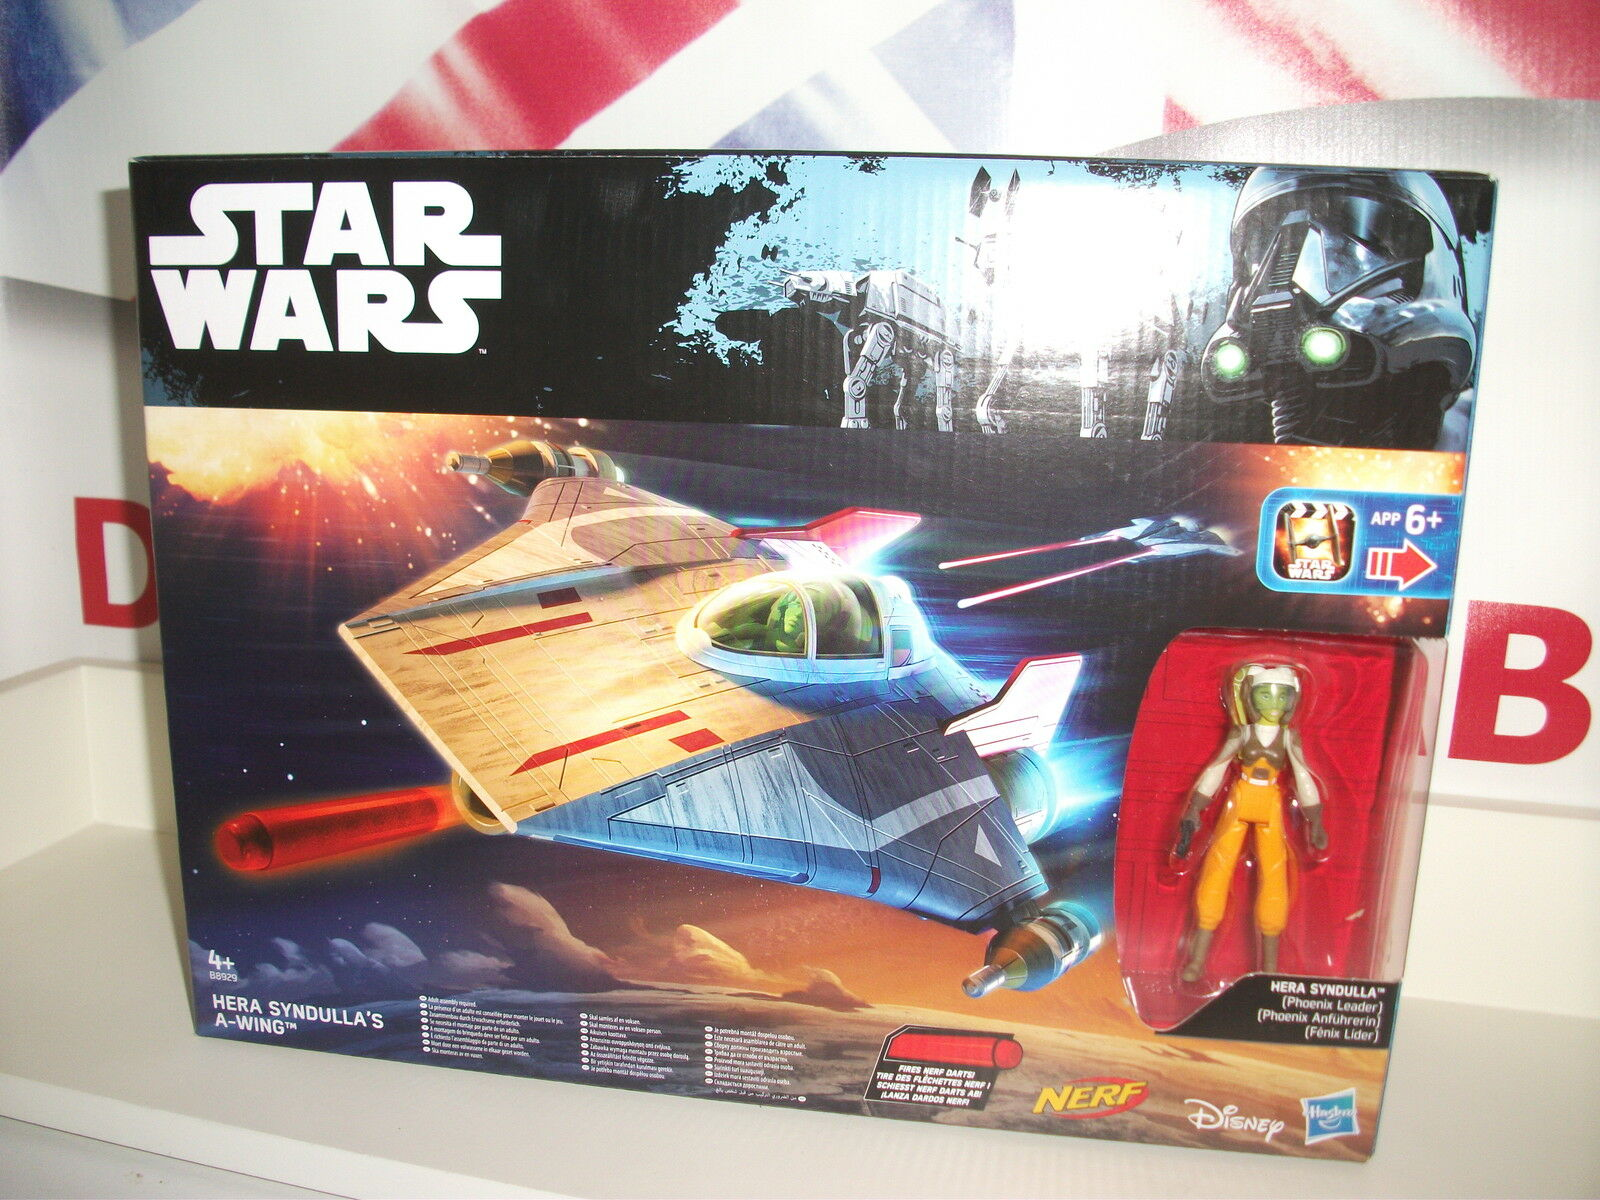 Star wars rebels   clone wars A-wing Star fighter fighter fighter + Hera syndulla c35964